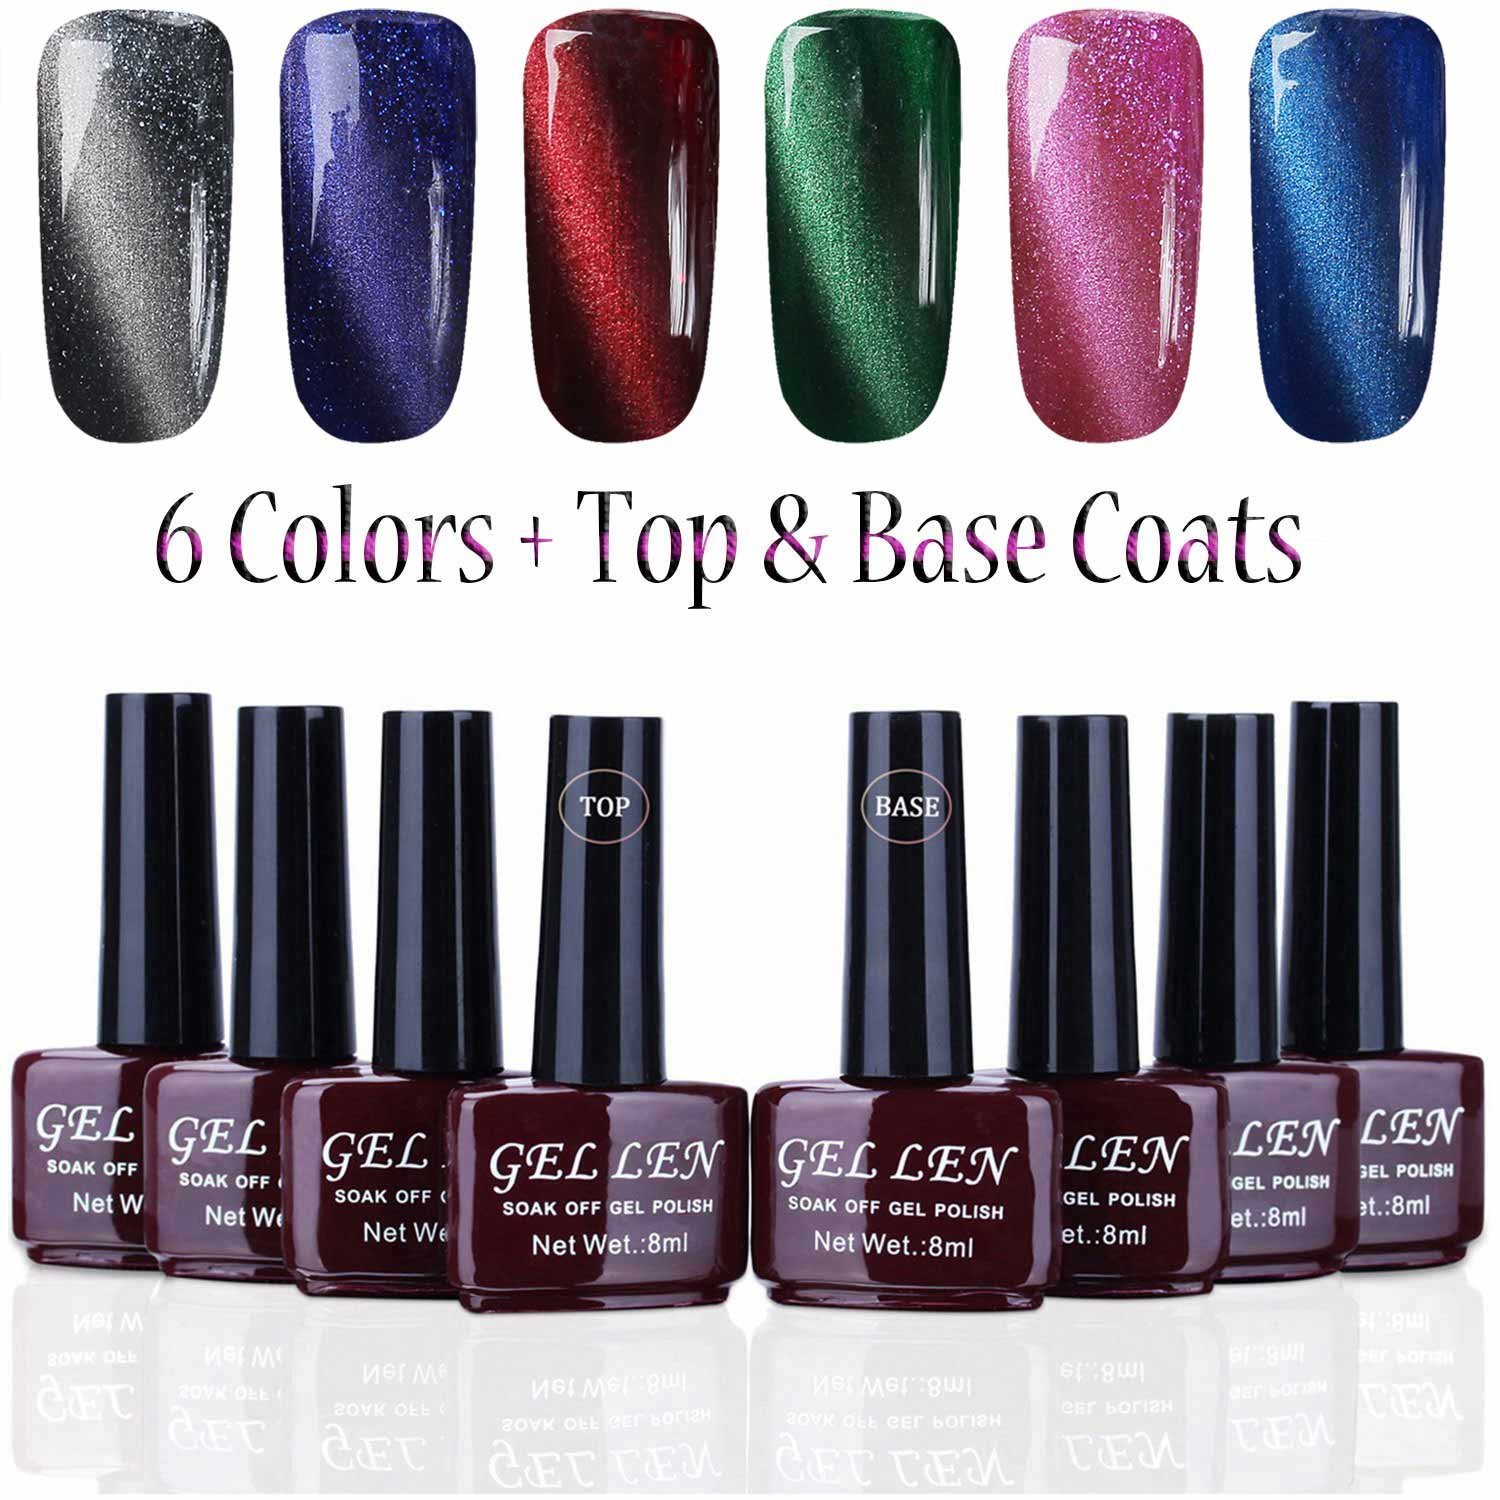 Amazon.com : Gellen New Trend 3D Cat Eye Gel Nail Polish - Pack of 6 ...